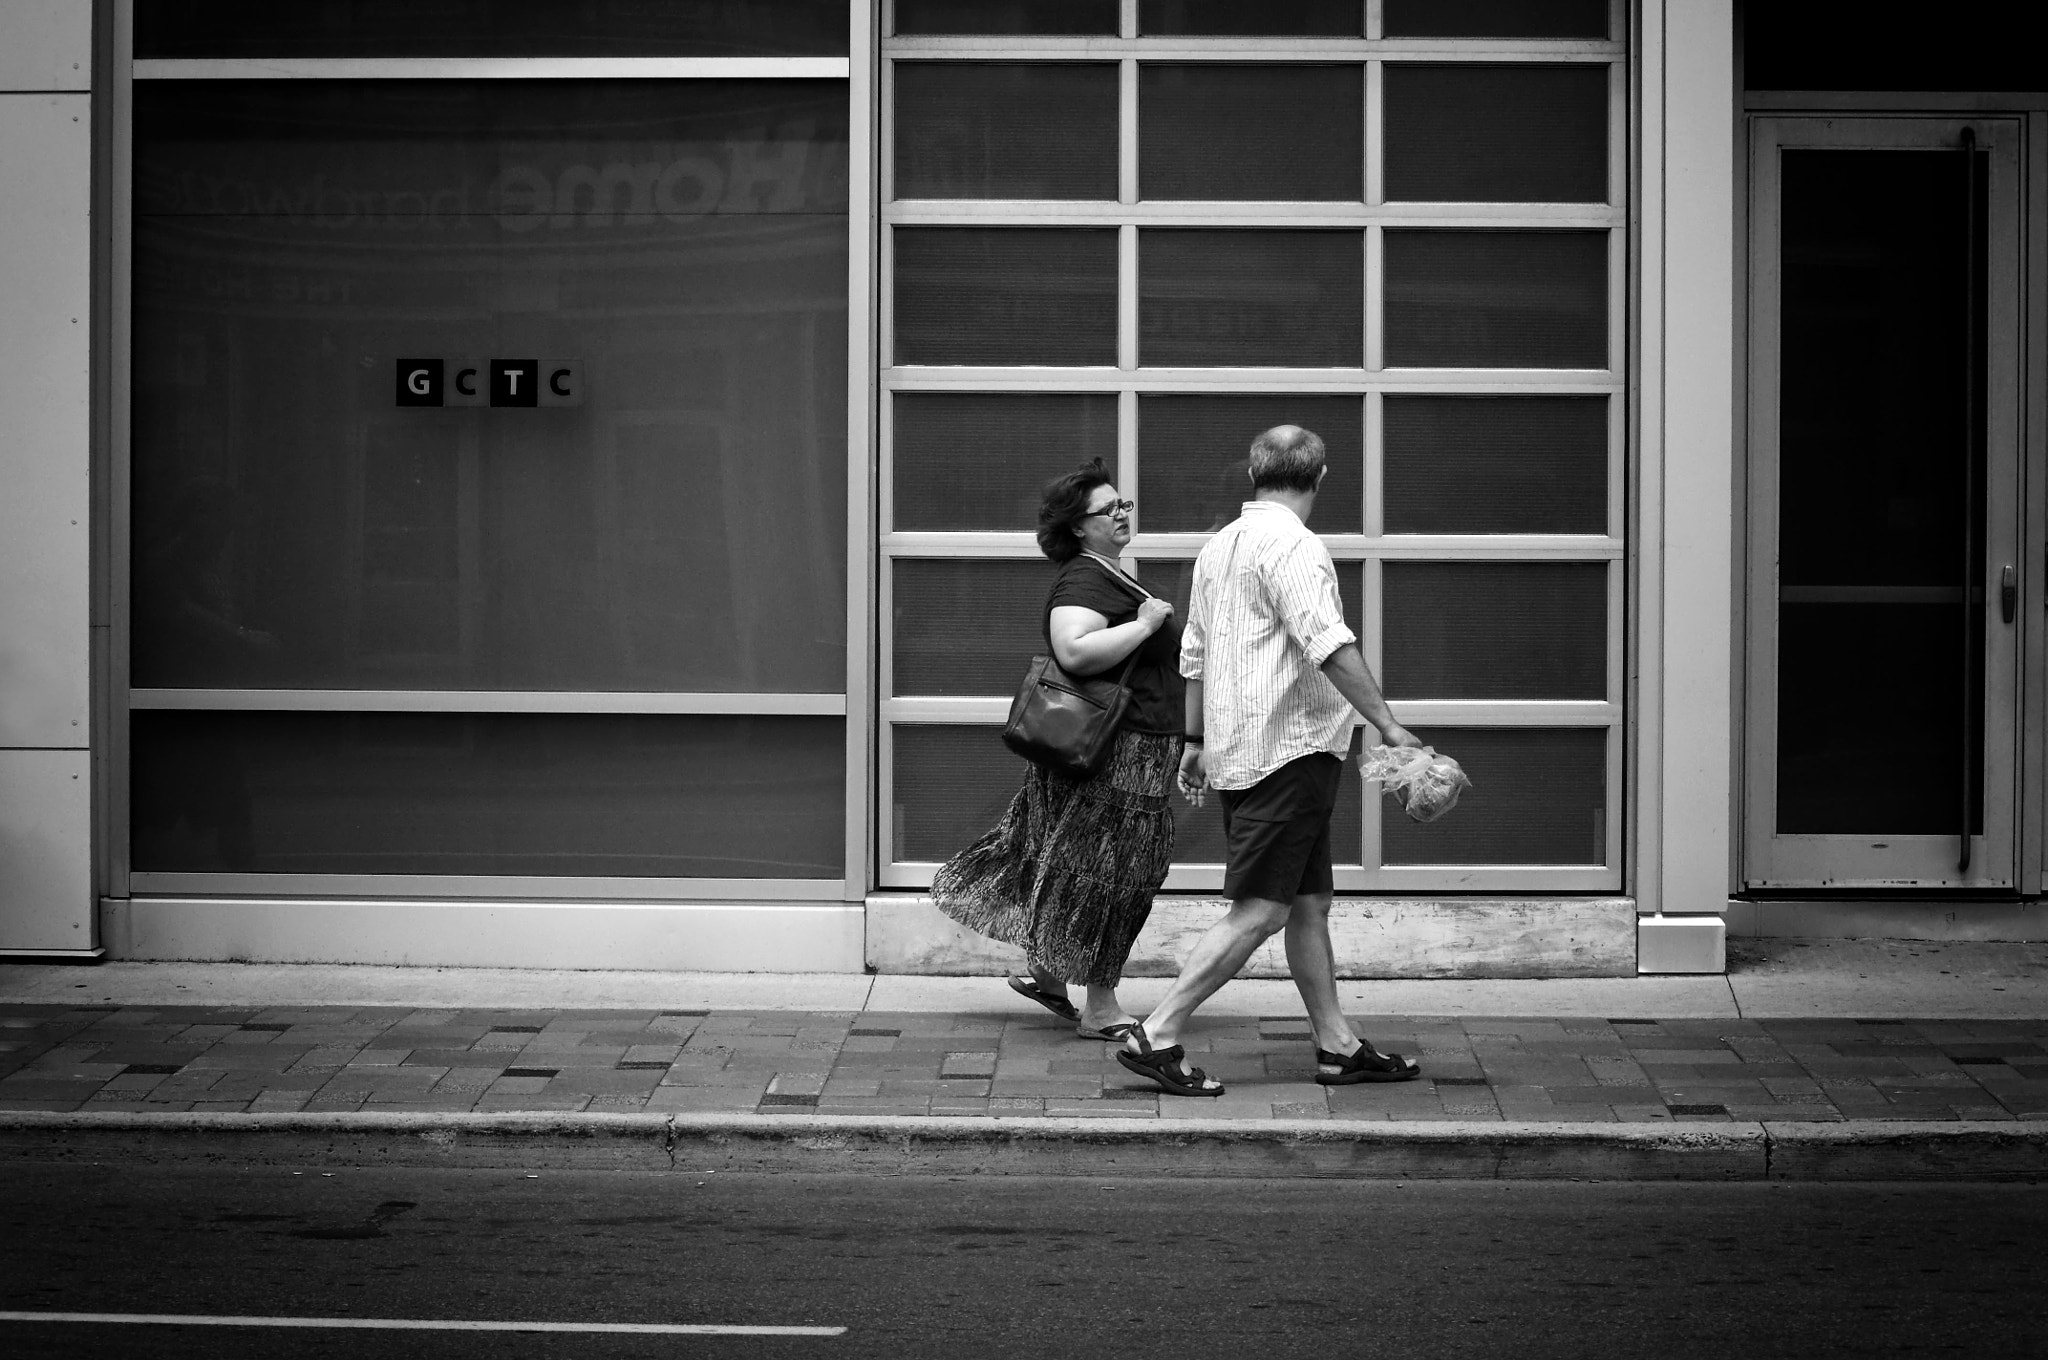 Photograph Midday Errands by Ari Schwartz on 500px